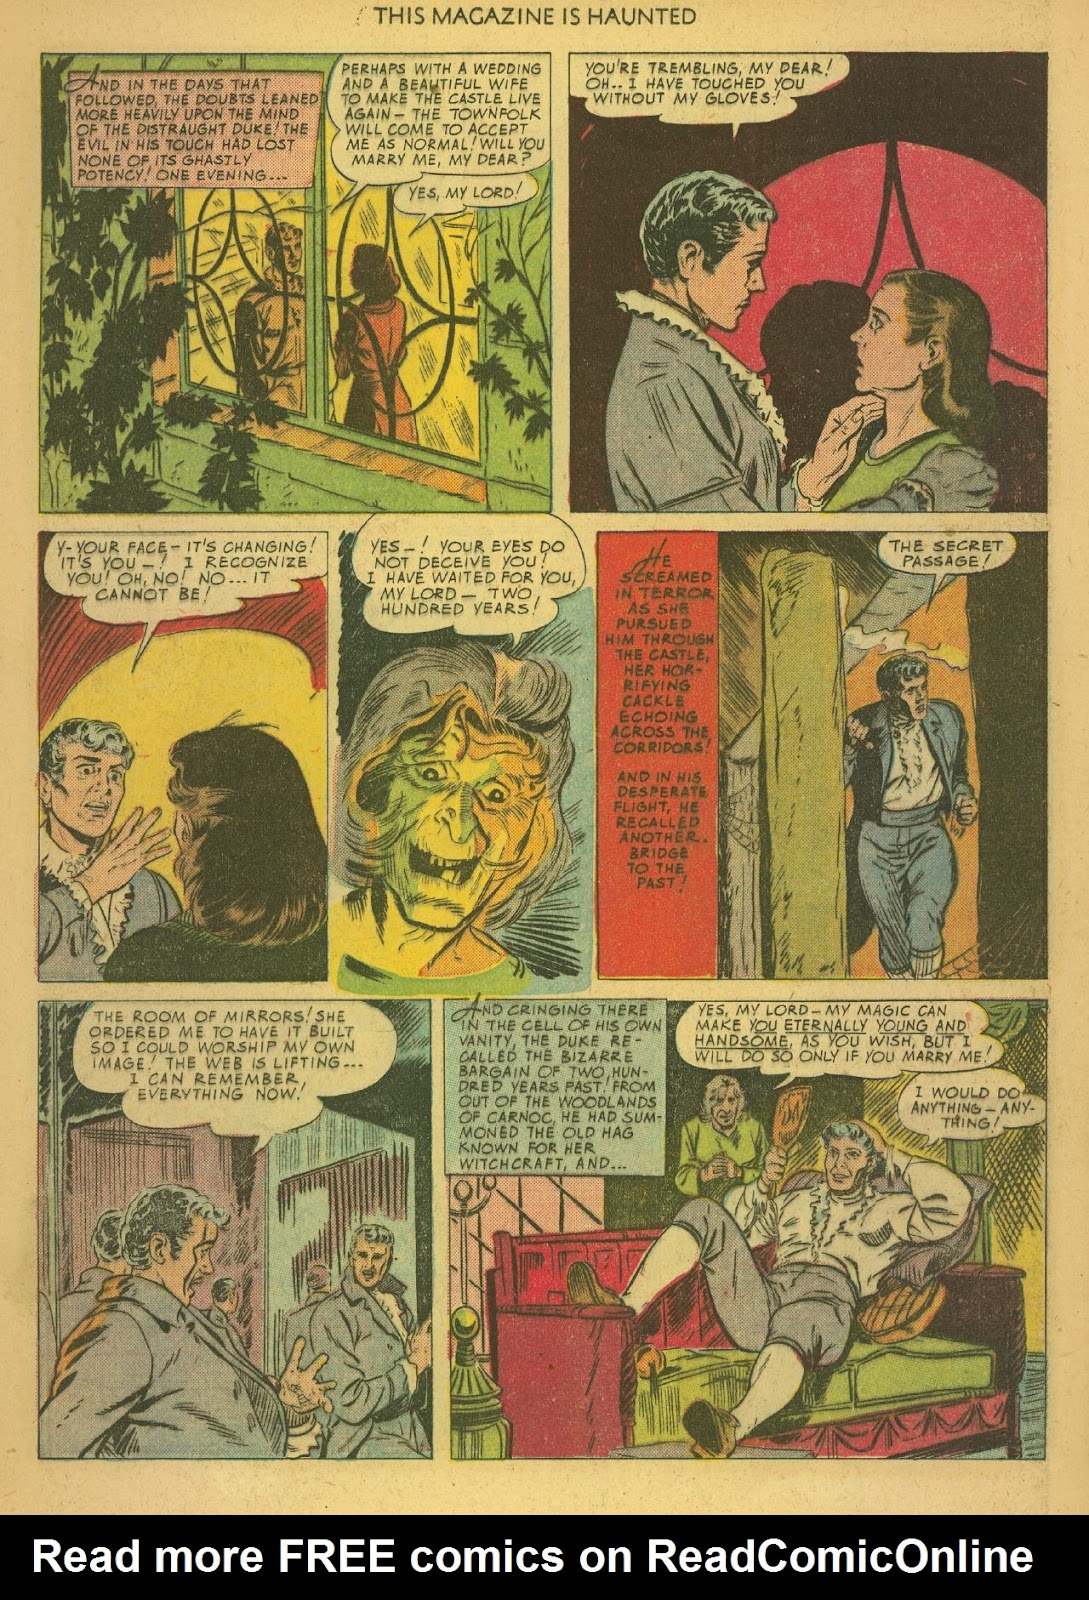 Read online This Magazine Is Haunted comic -  Issue #1 - 13